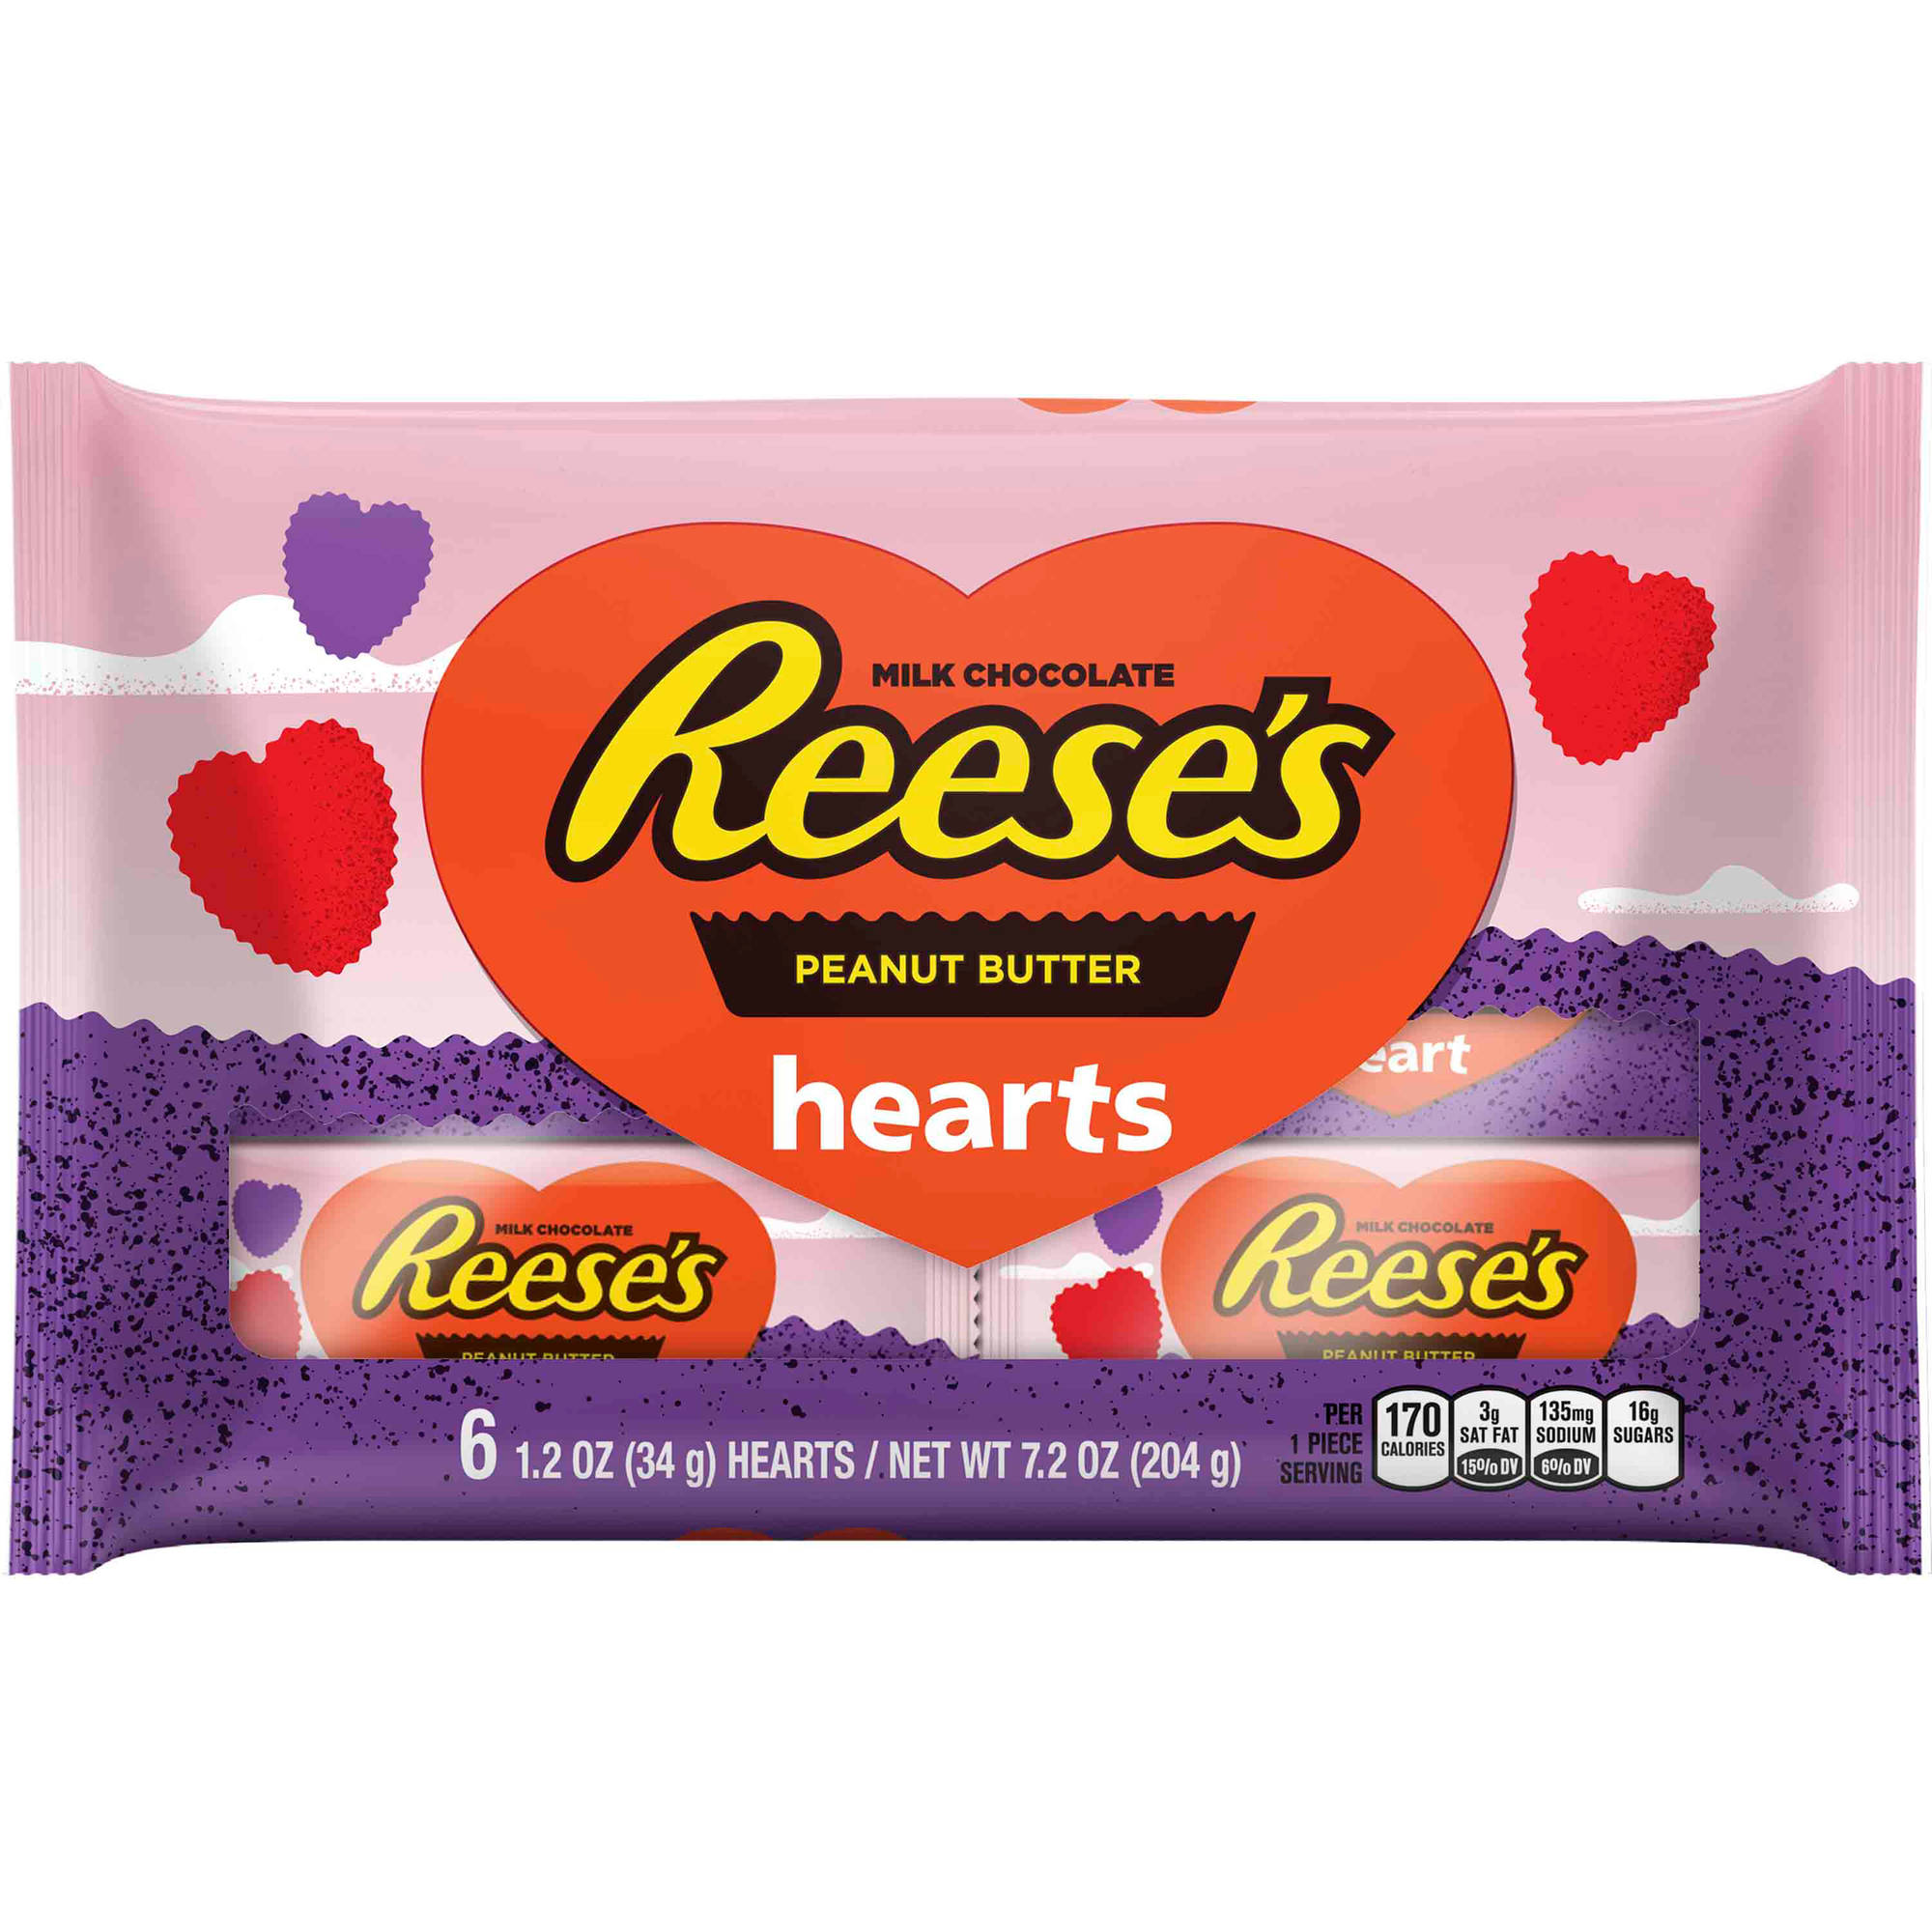 Reese's Peanut Butter Valentine's Hearts, 1.2 oz, 6ct